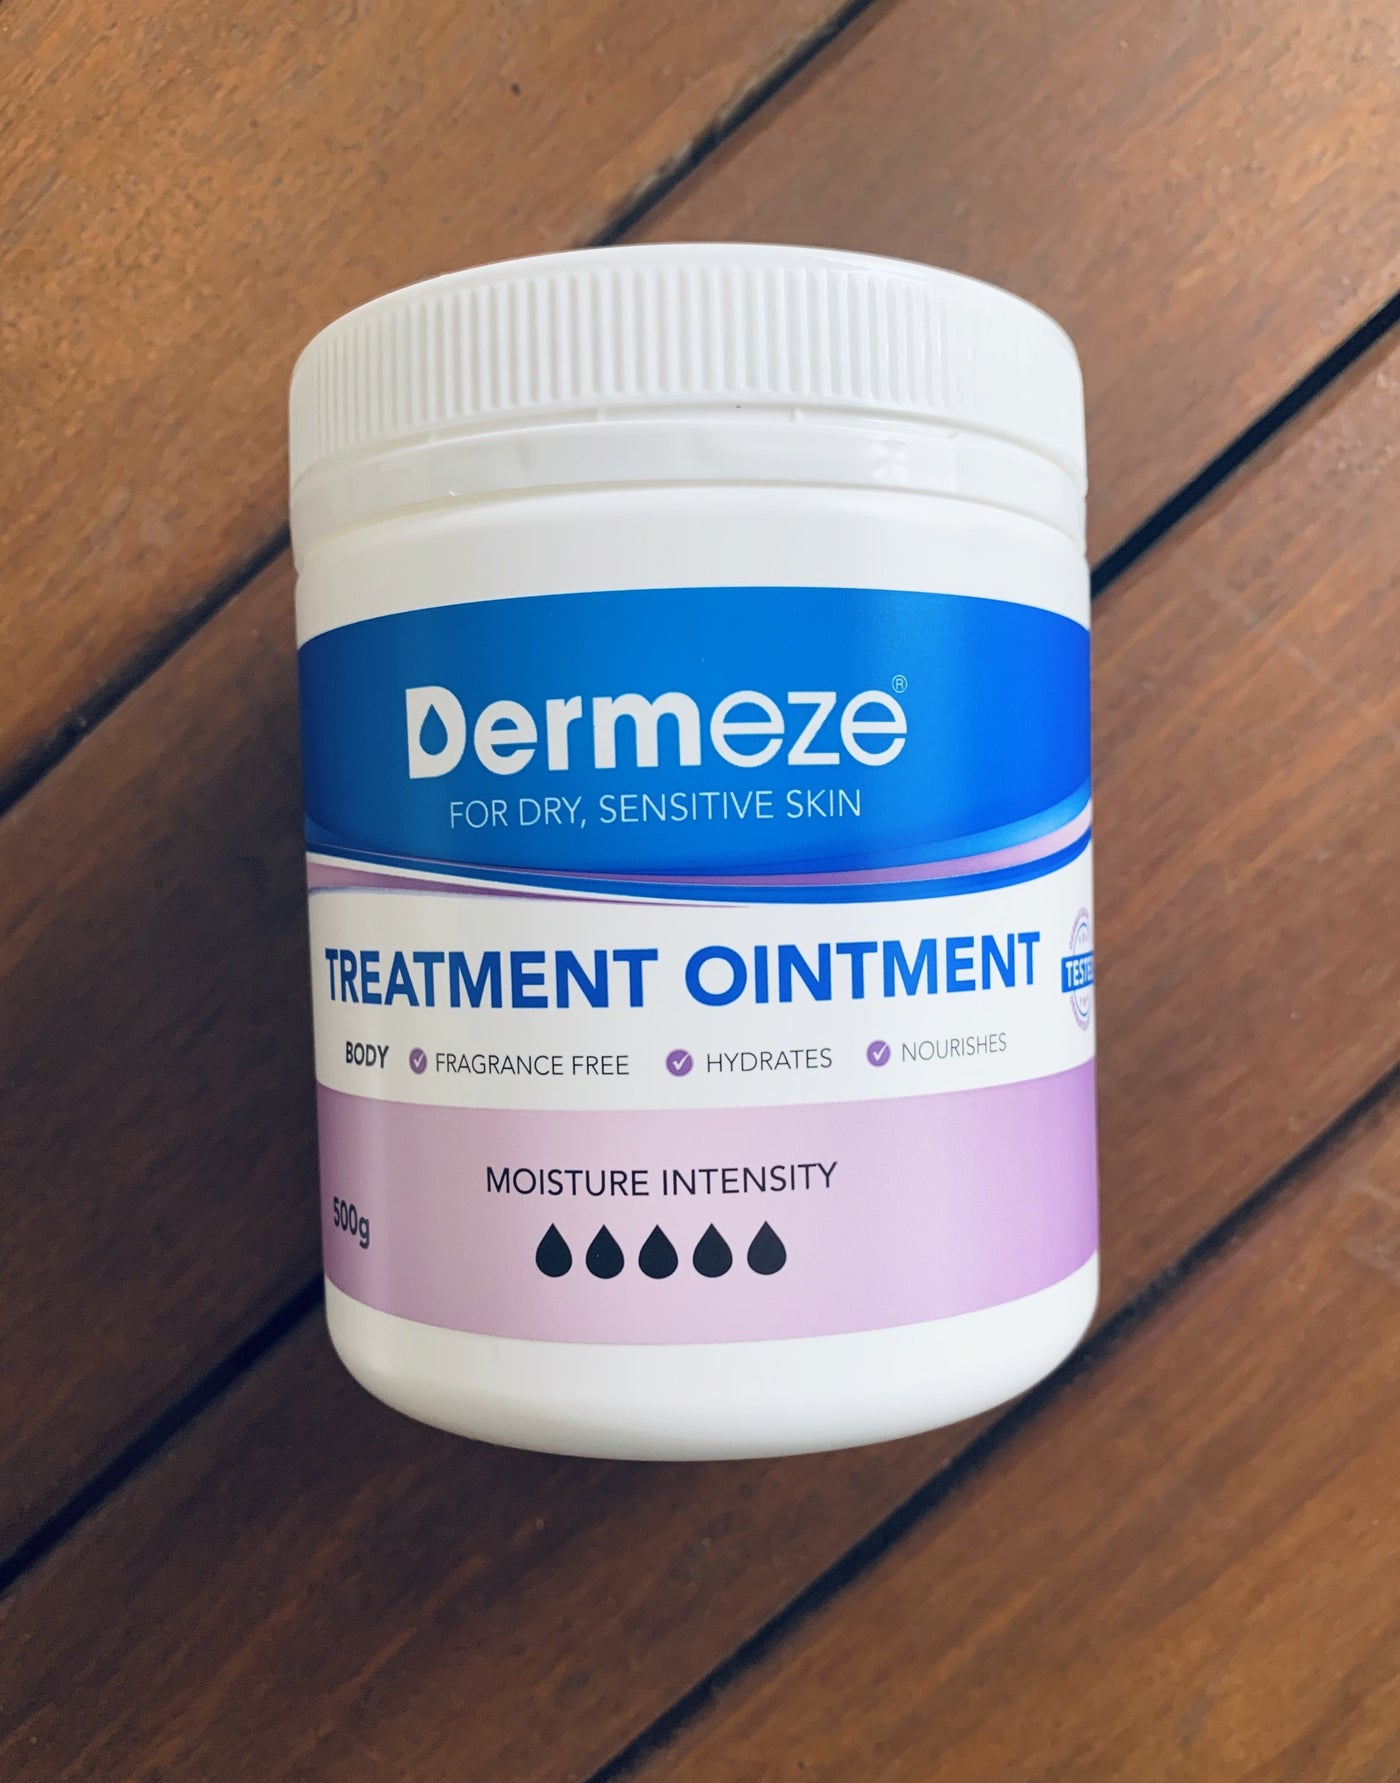 Dermeze® Treatment Ointment 500g tub